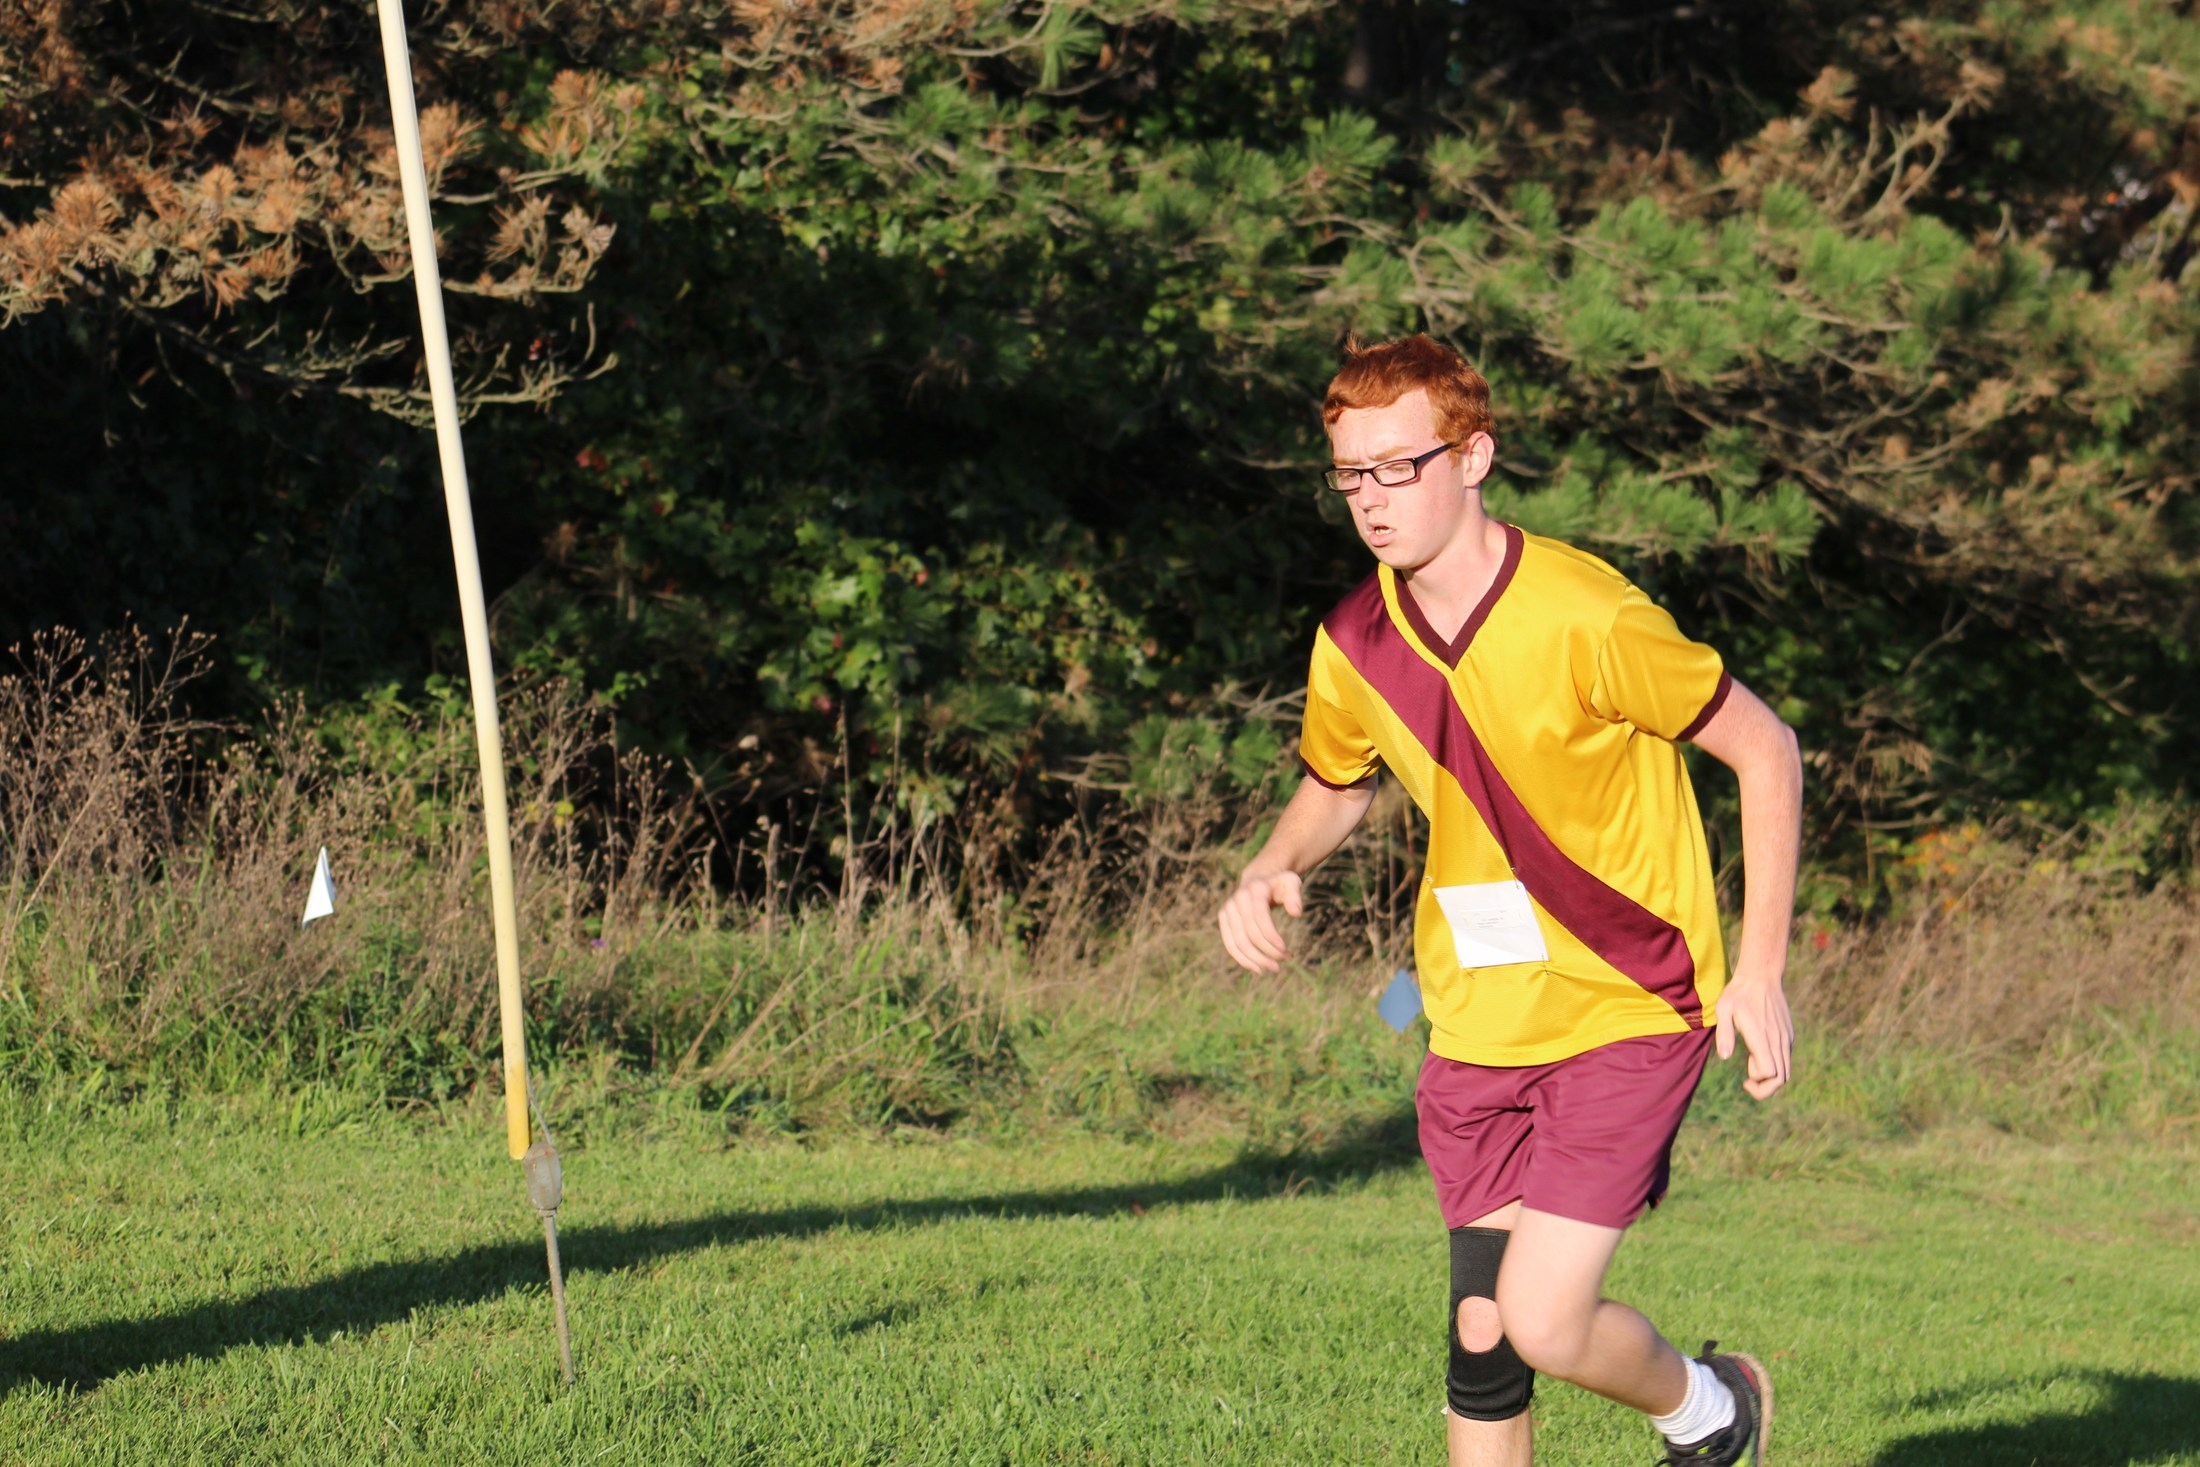 Brandywine Cross Country